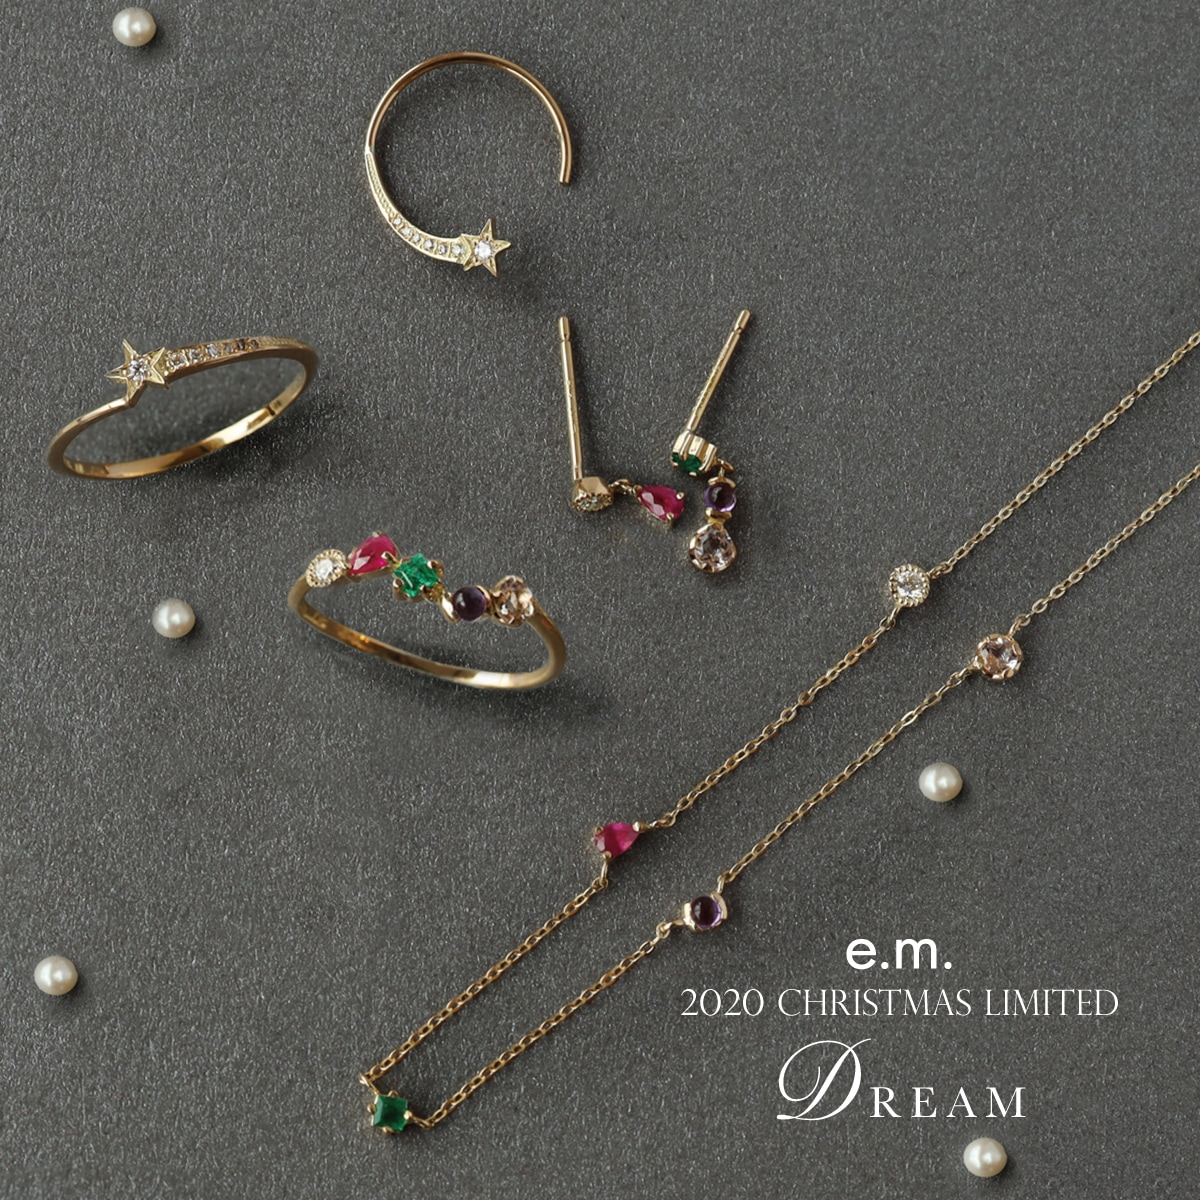 2020_e.m._christmascollection